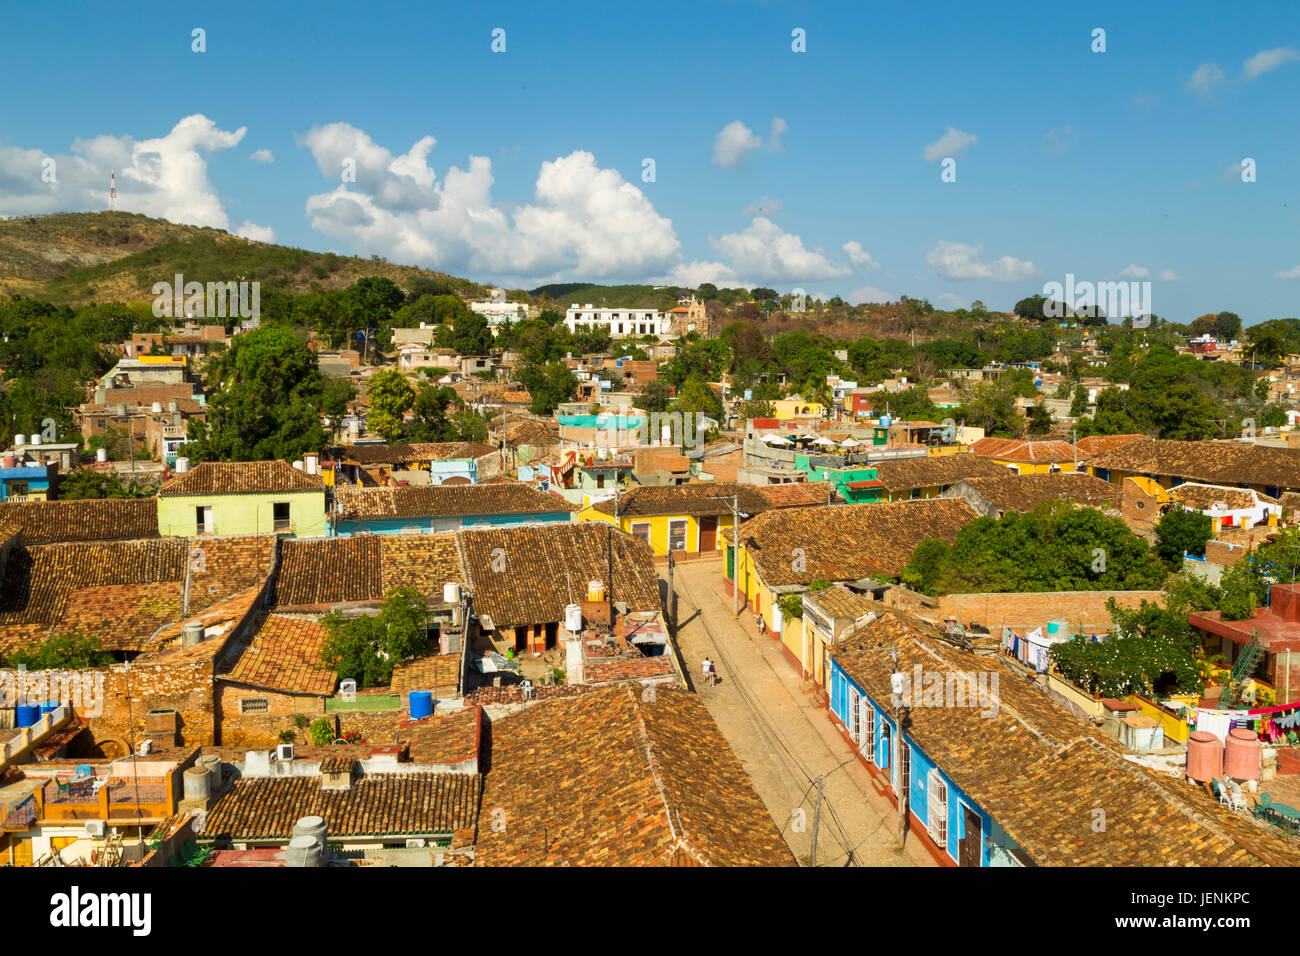 Wide view of the town Trinidad, Cuba - Stock Image